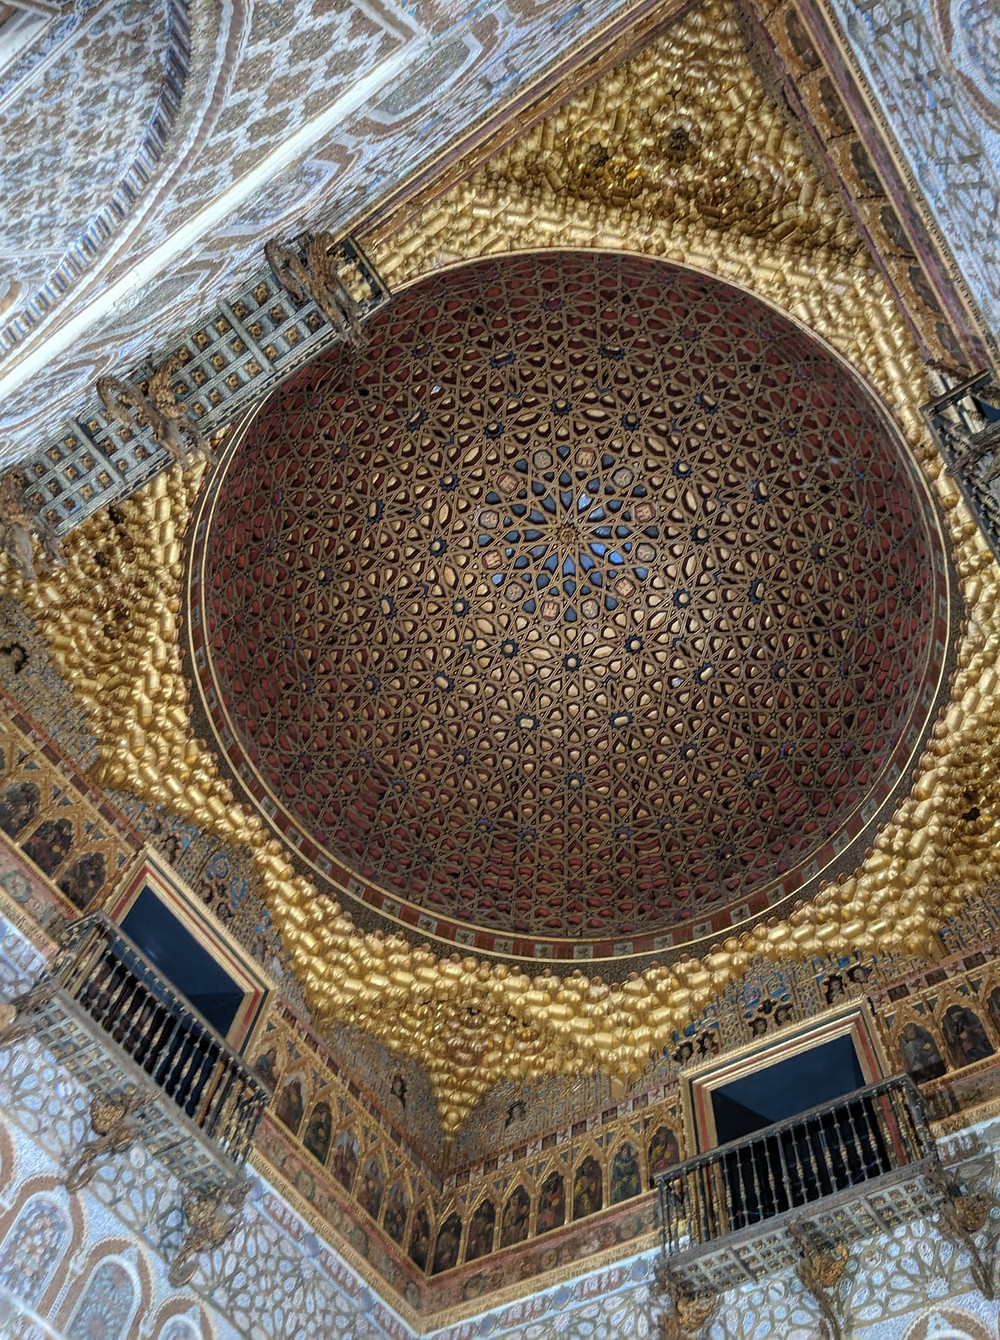 The beautiful dome ceiling in the Hall of the Ambassadors in the Royal Alcazar. Cannot get over how gorgeous the intricate details are, showcasing the historical Moorish design and influence in the area.